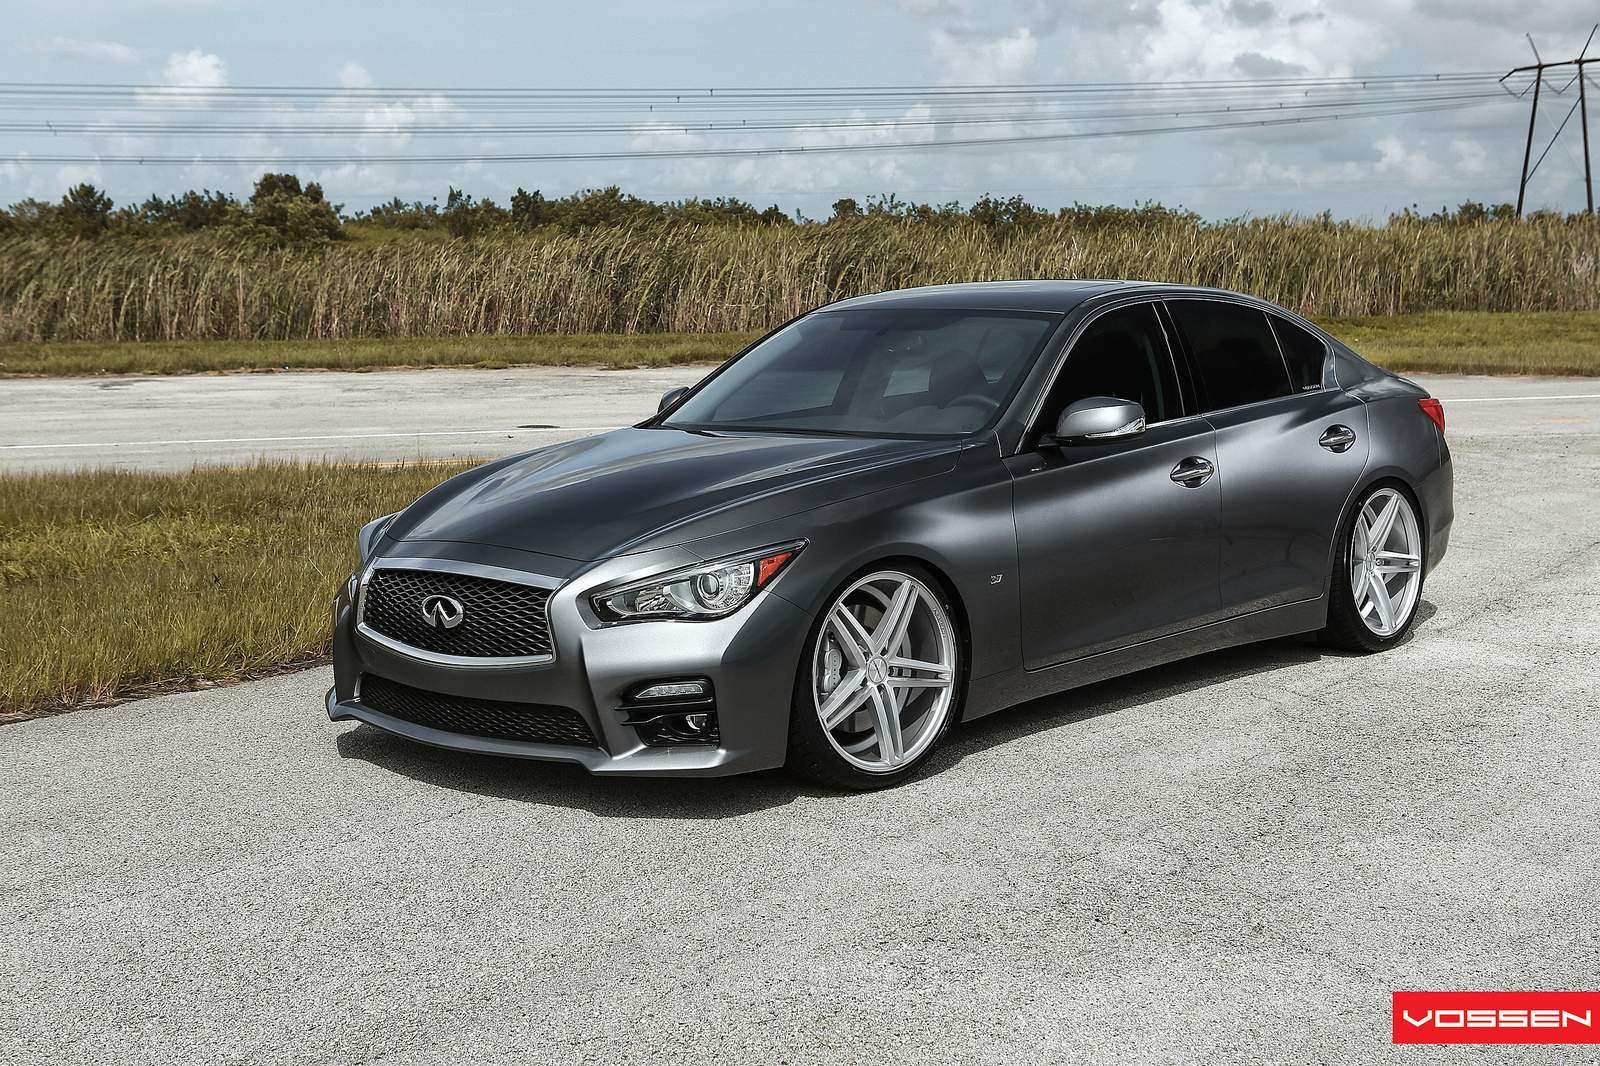 world s first modified 2014 infiniti q50 s gets vossen concave wheels video autoevolution. Black Bedroom Furniture Sets. Home Design Ideas